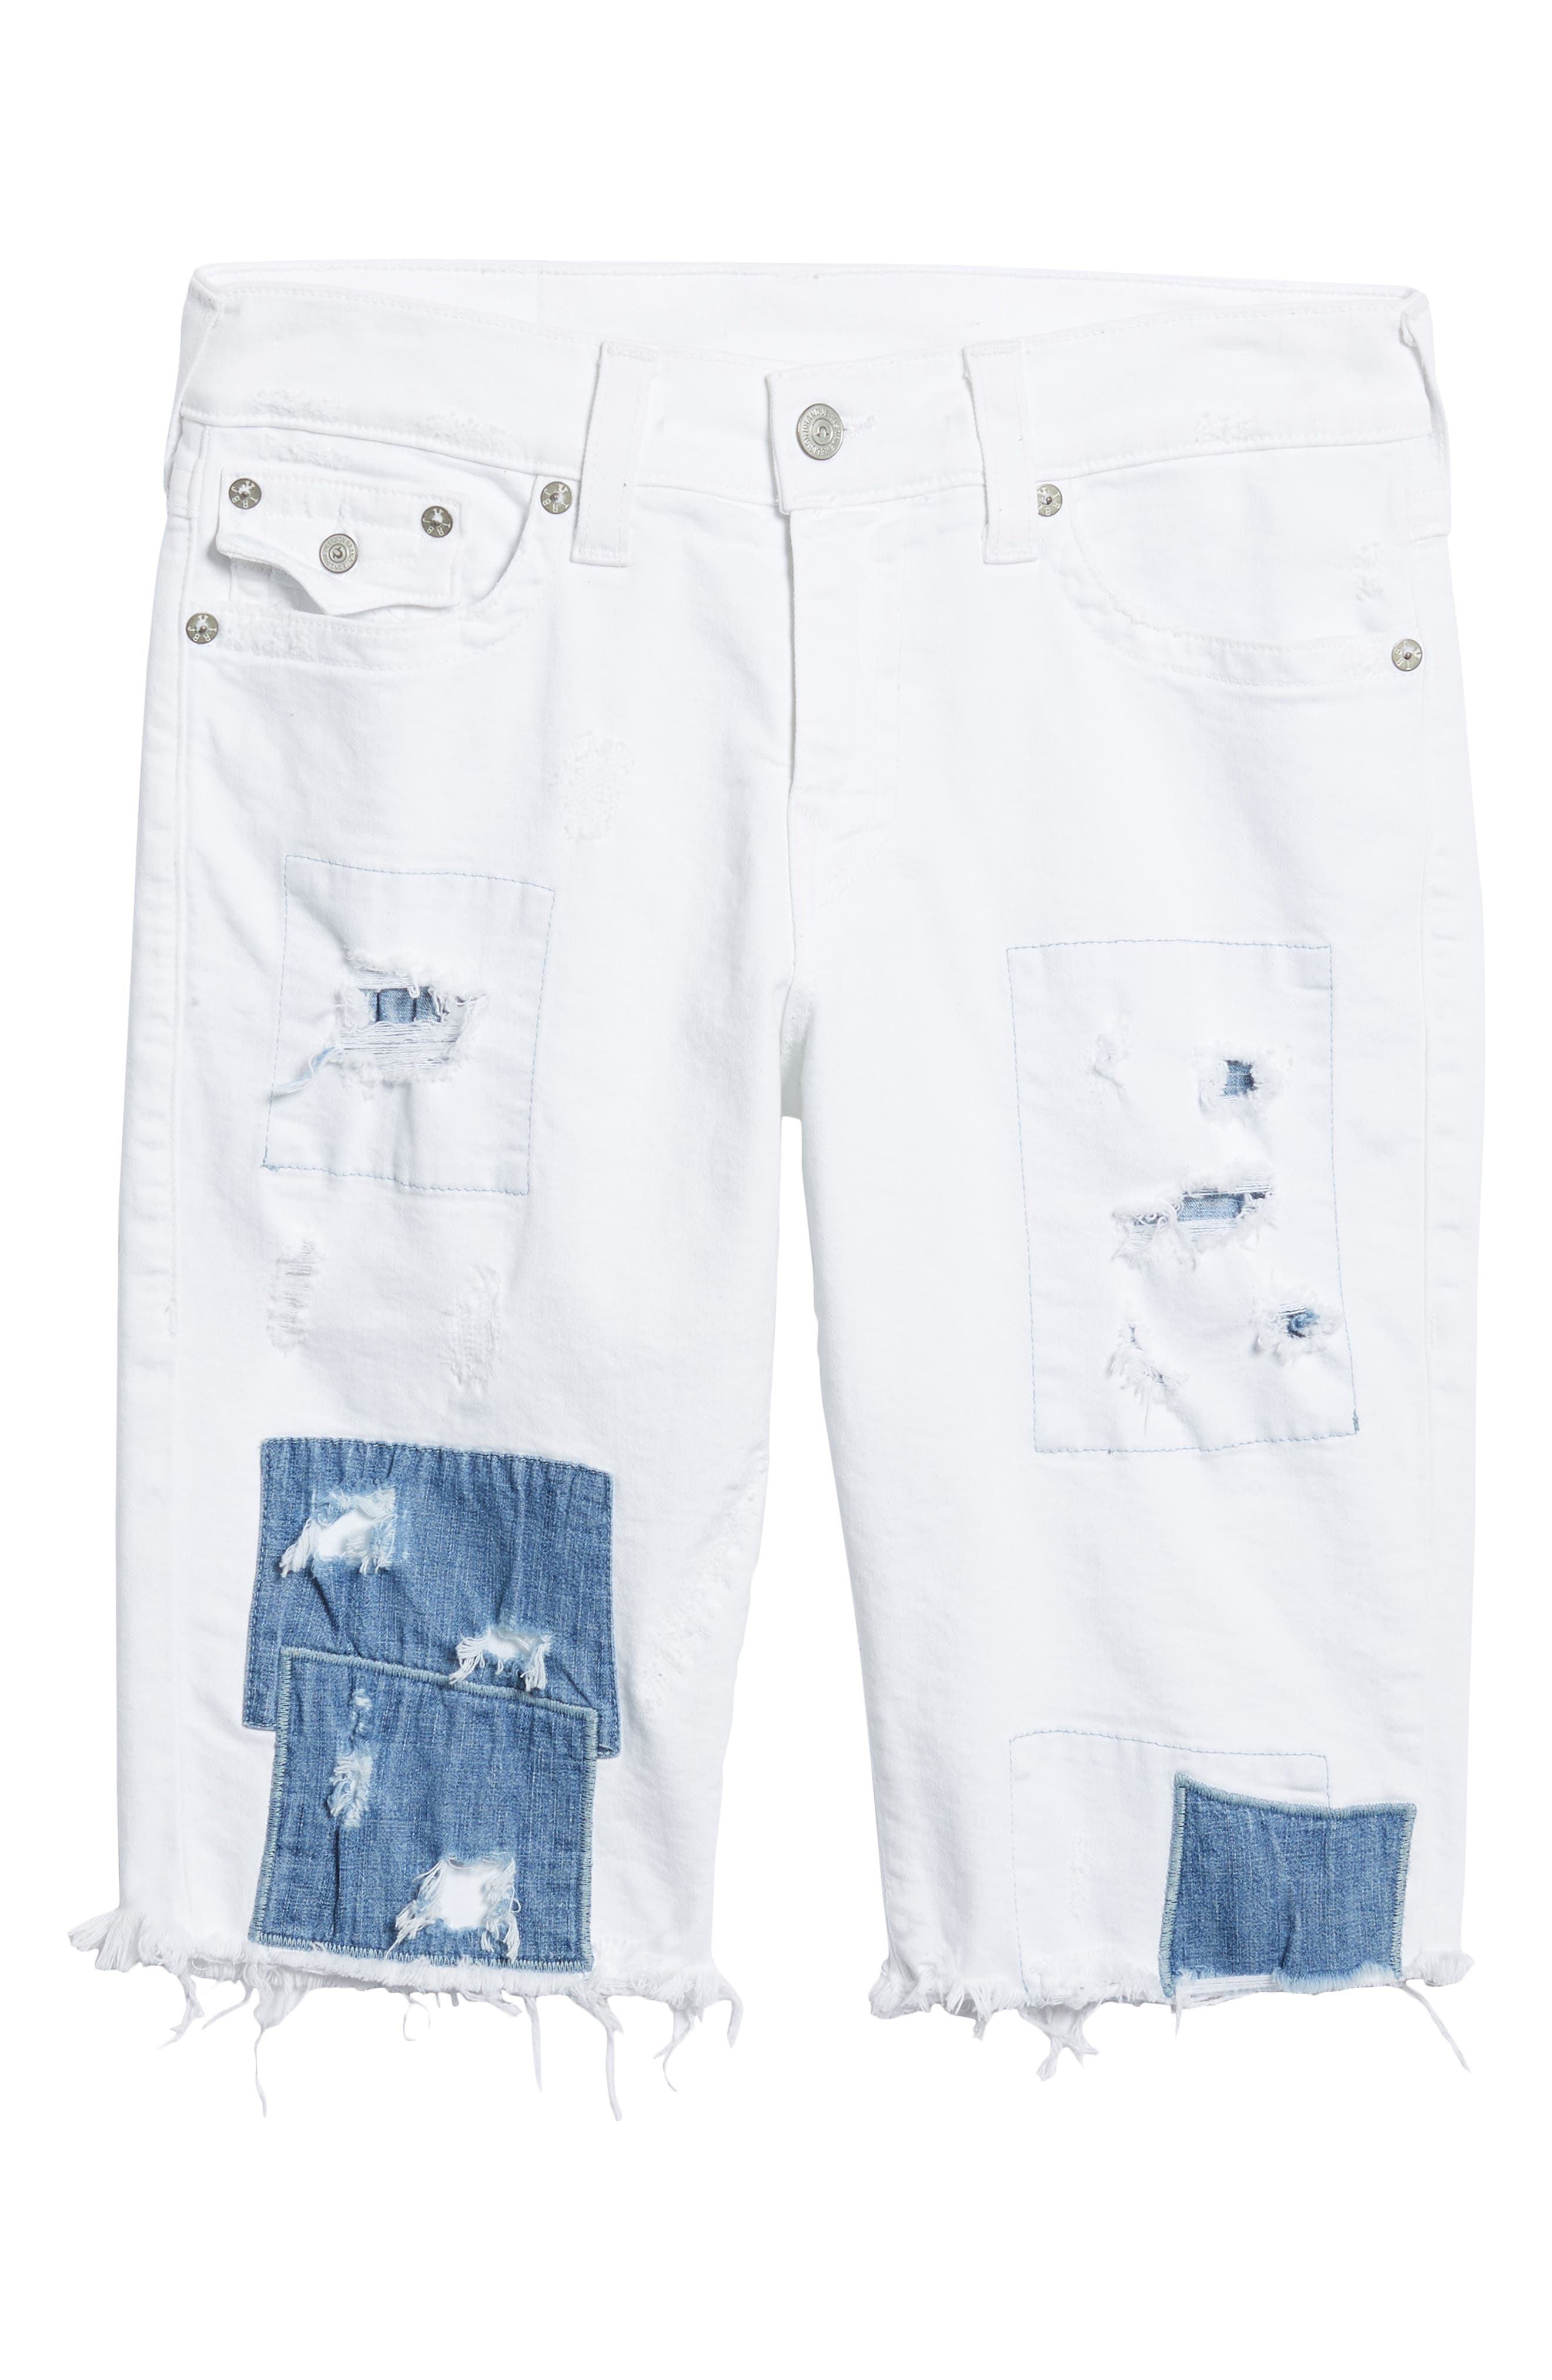 Ricky Relaxed Fit Denim Shorts,                             Alternate thumbnail 6, color,                             Eqxl Street Cred